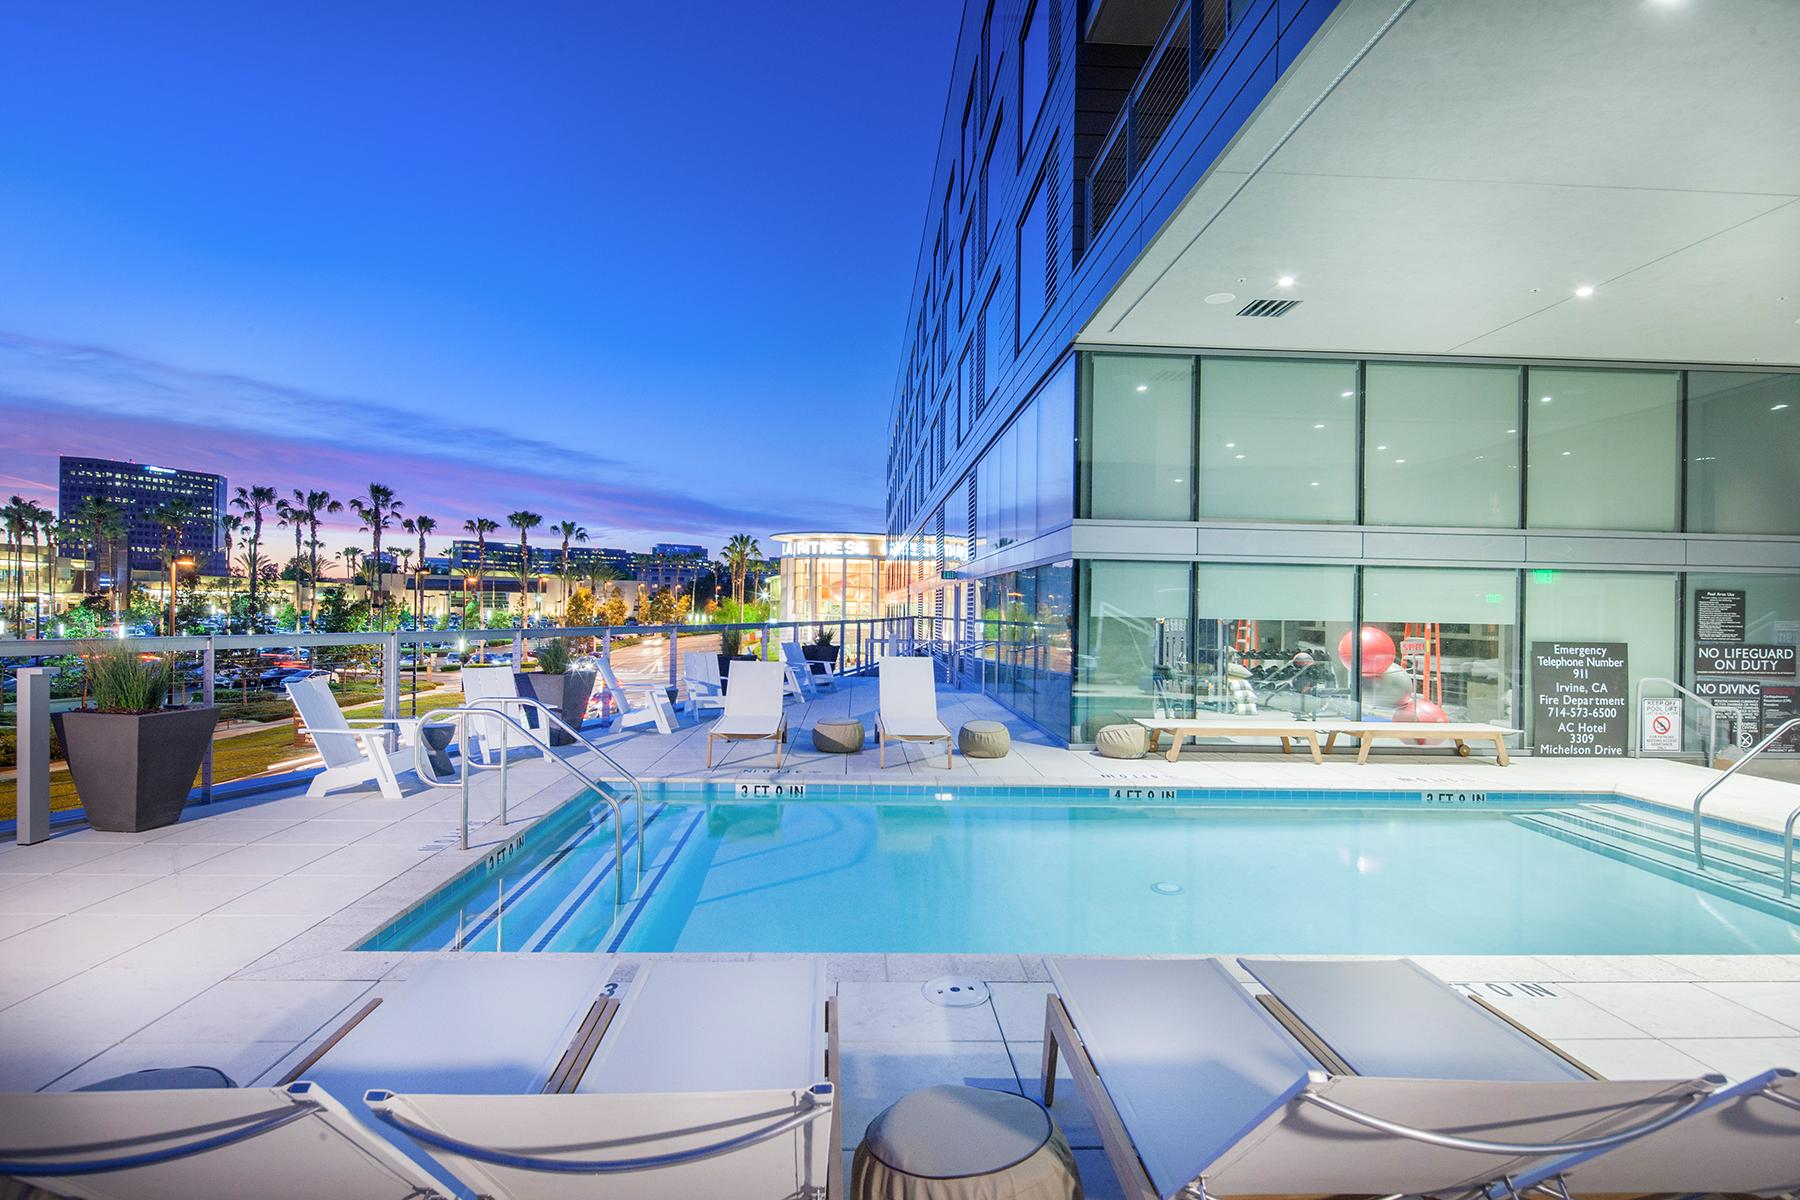 Ac marriott ryan companies - Menzies hotel irvine swimming pool ...